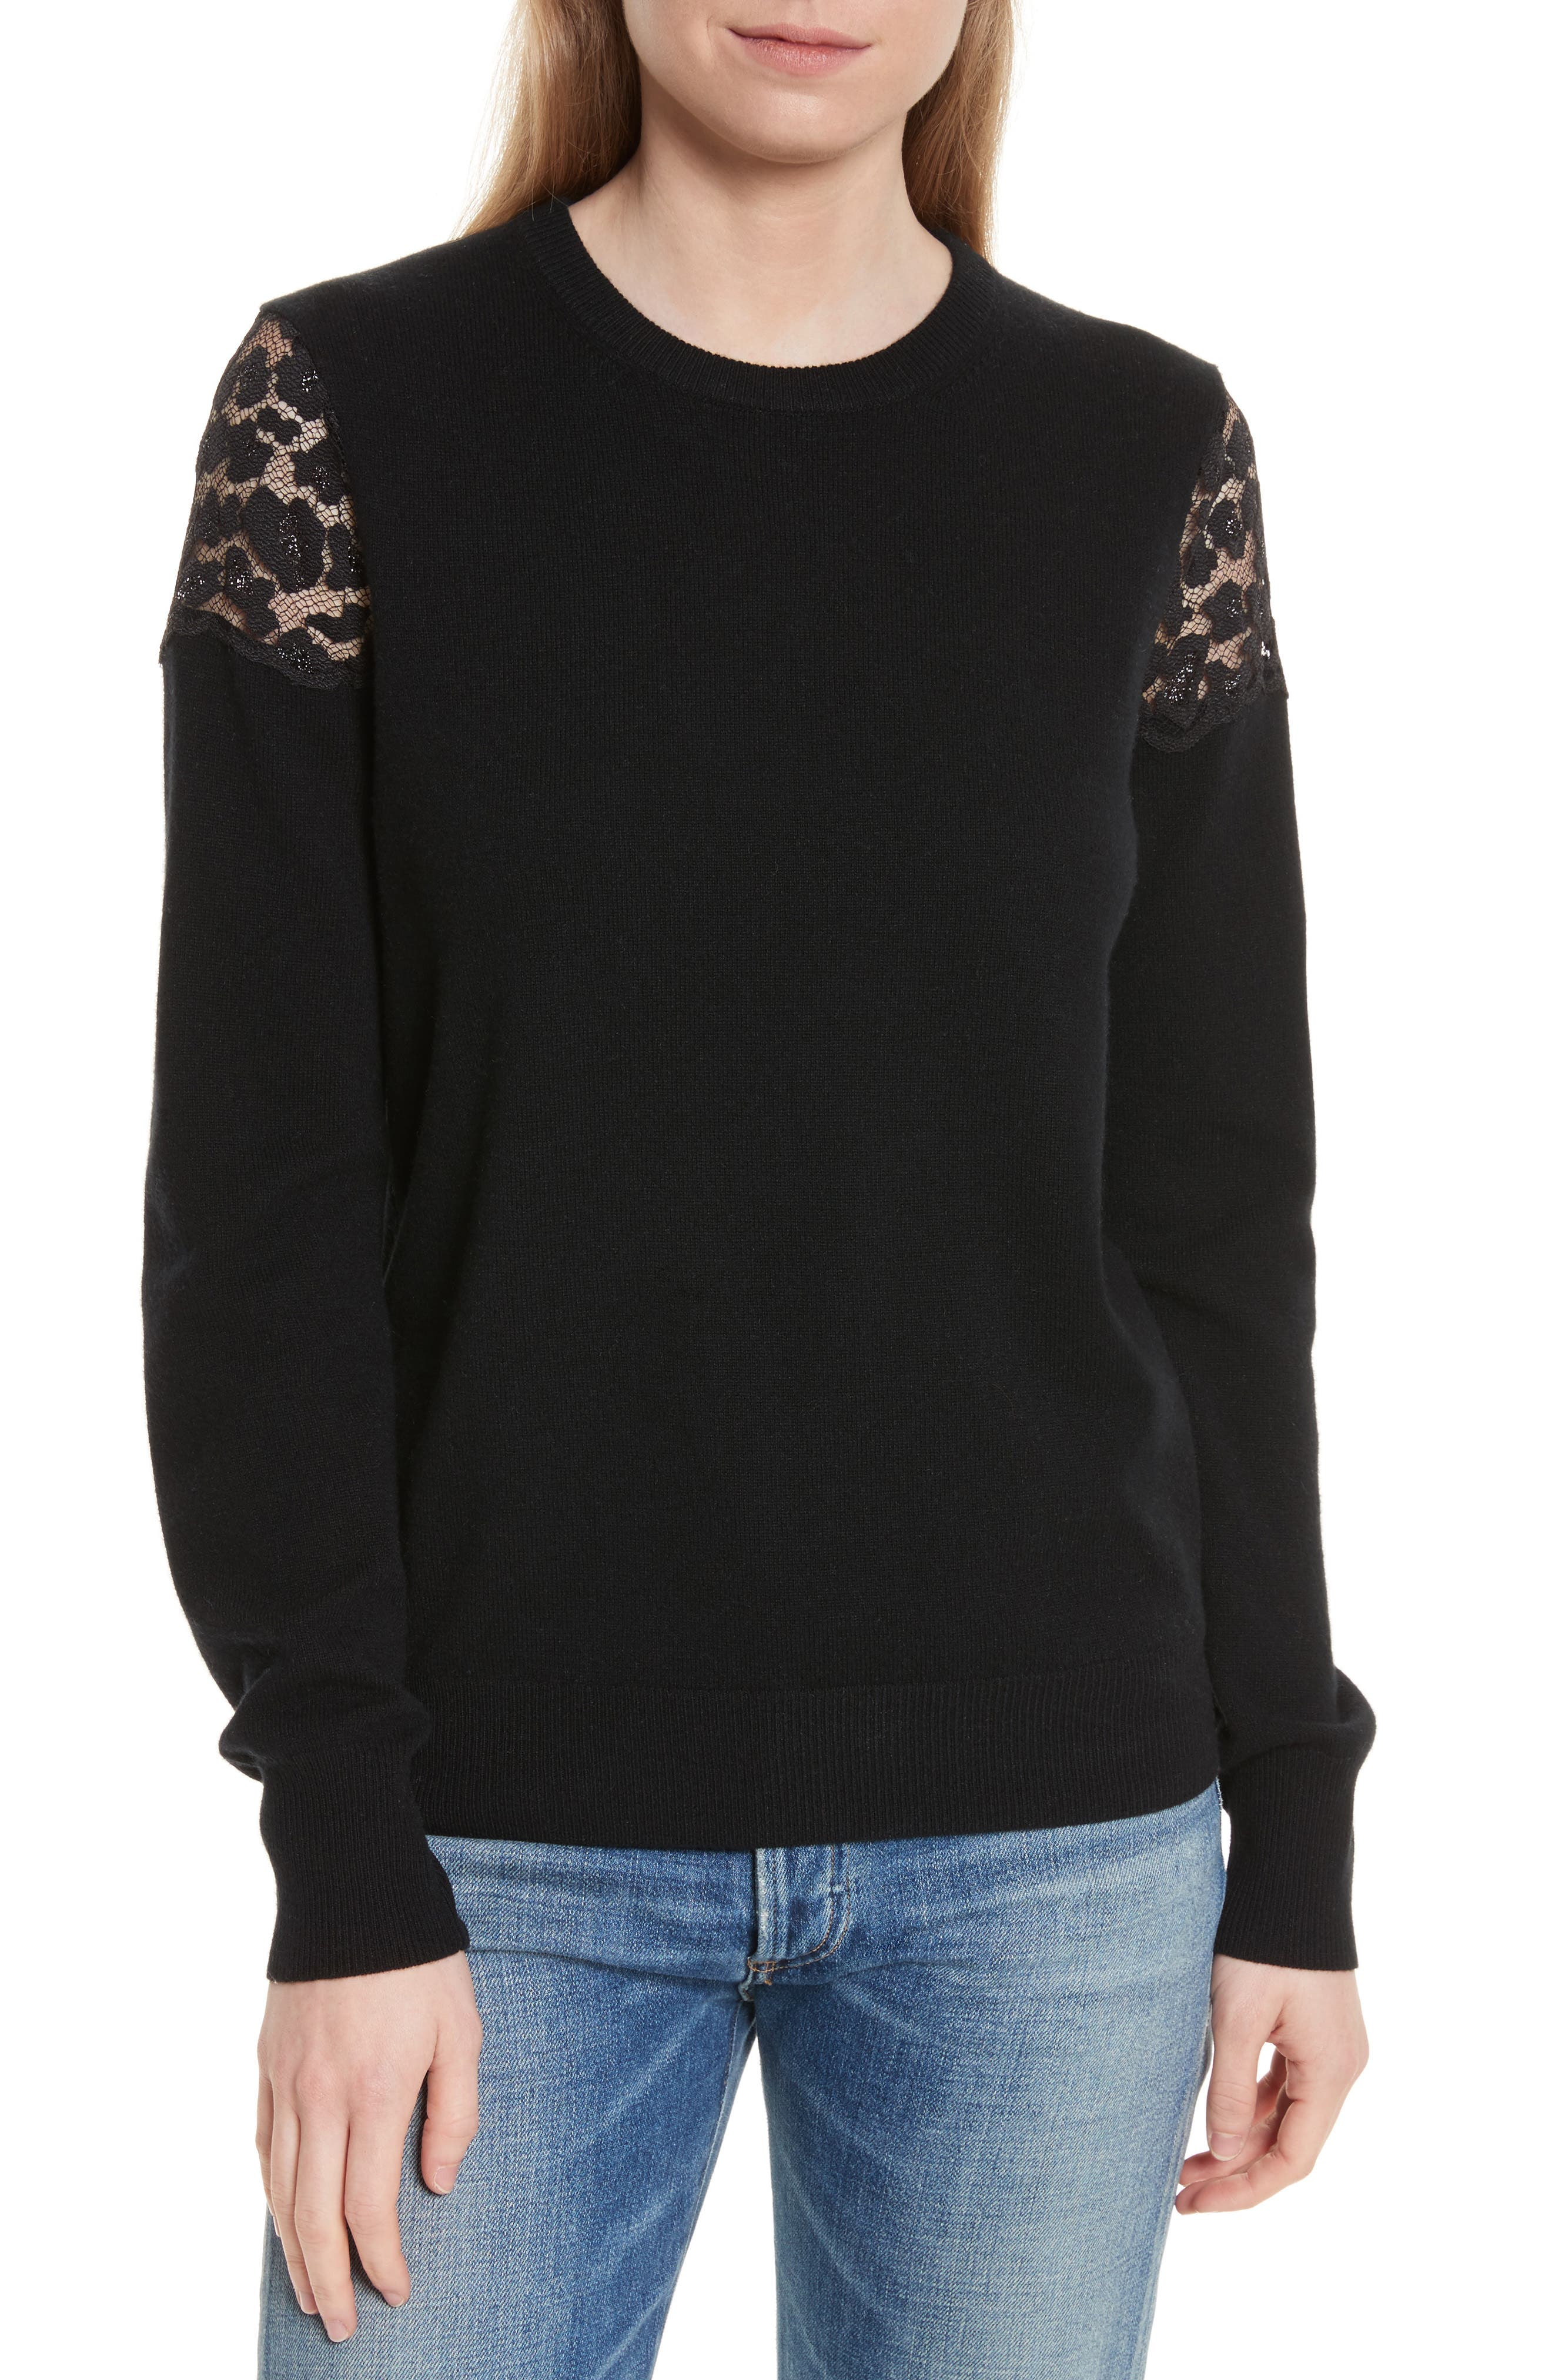 Shane Crew Pullover,                             Main thumbnail 1, color,                             Black